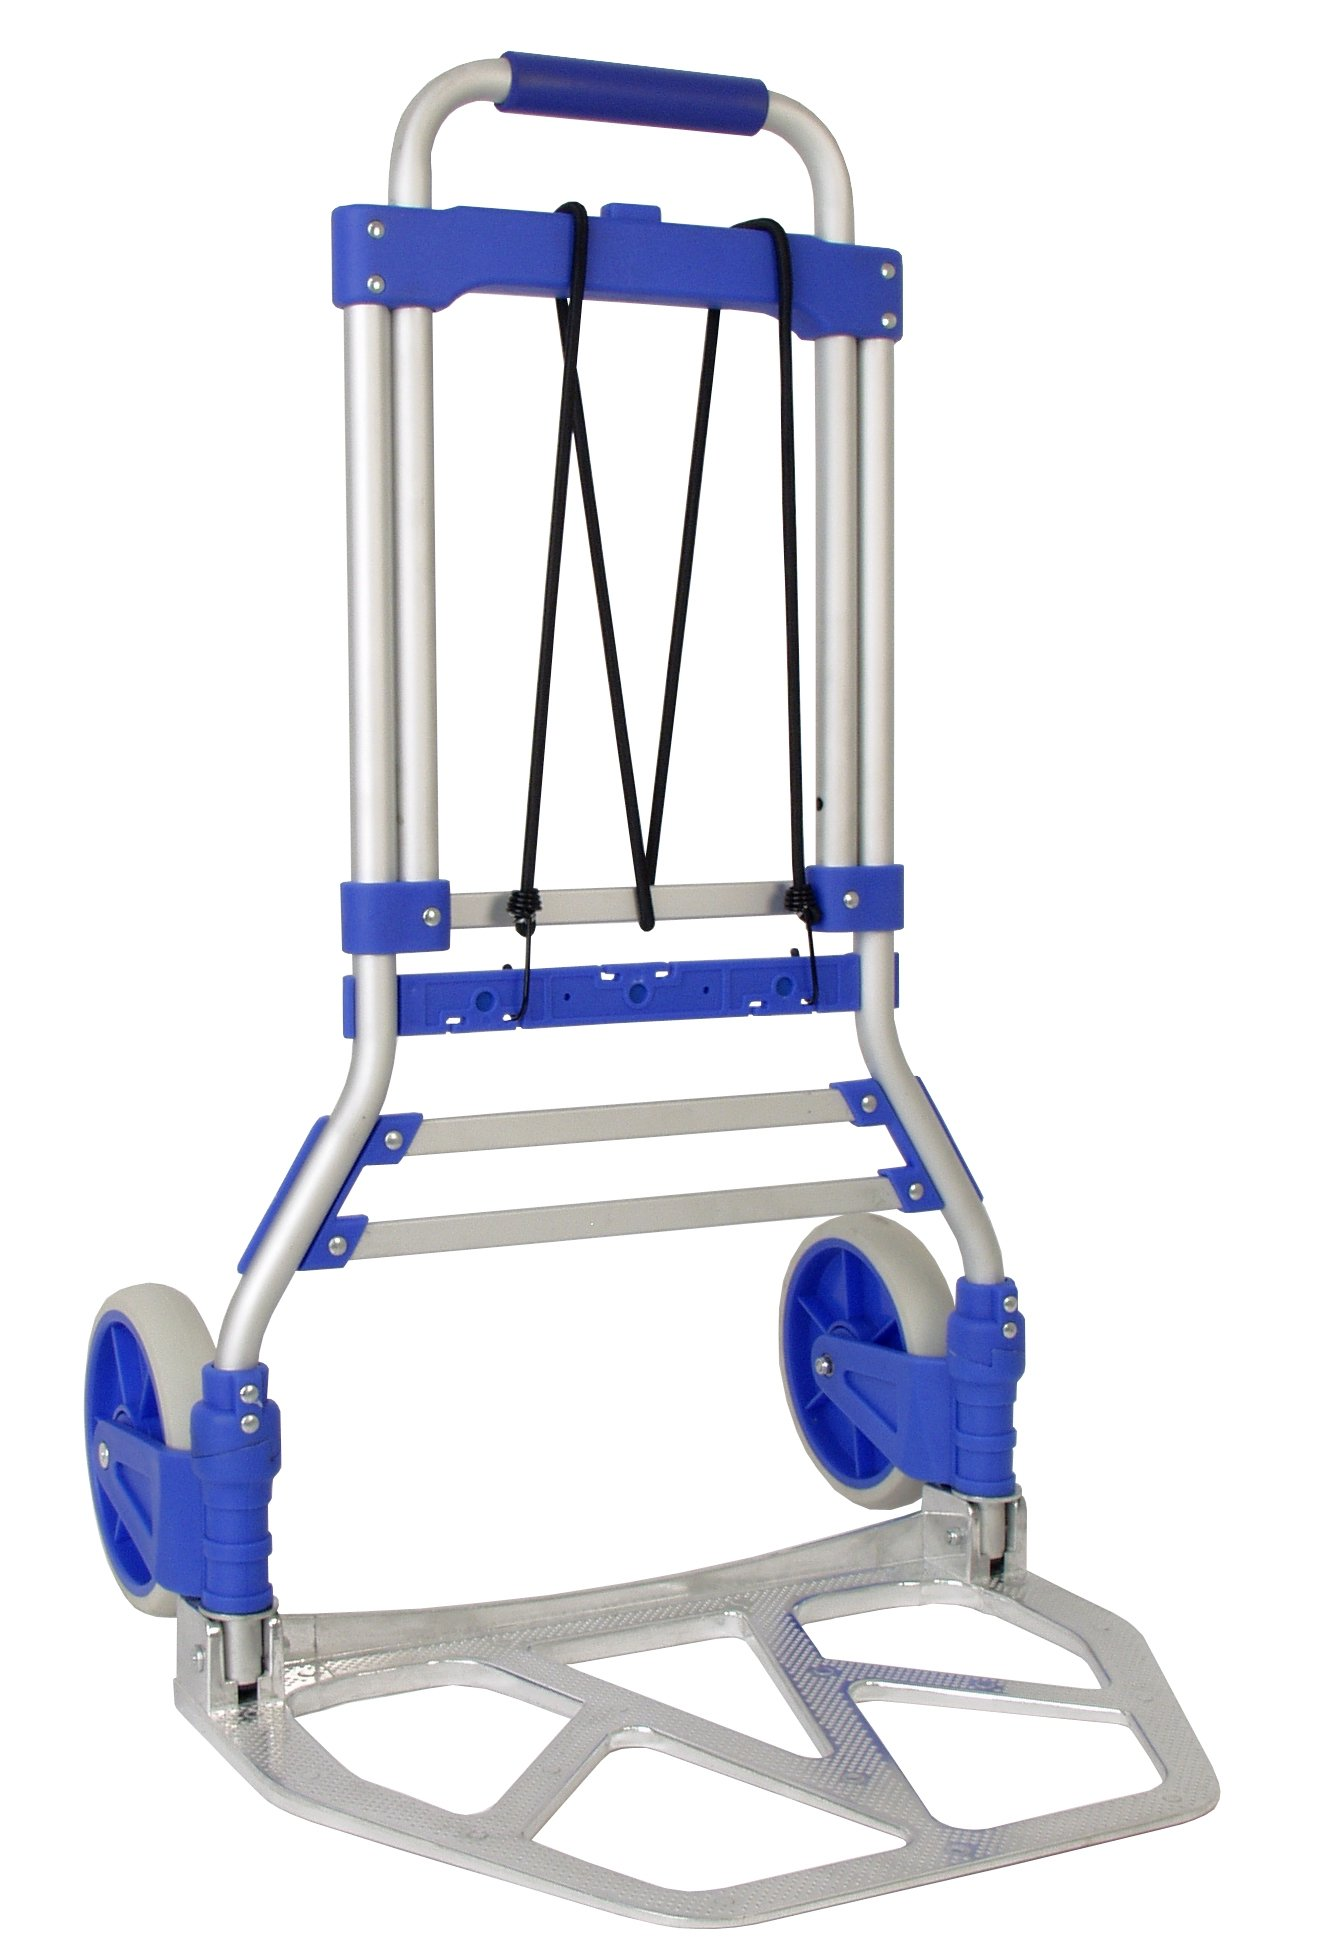 RWM Casters FW-90C Aluminum Foldaway Hand Truck with Loop Handle, Blue, 275 lbs Load Capacity, 42-1/2'' Height, 19'' Width X 13-1/2'' Depth